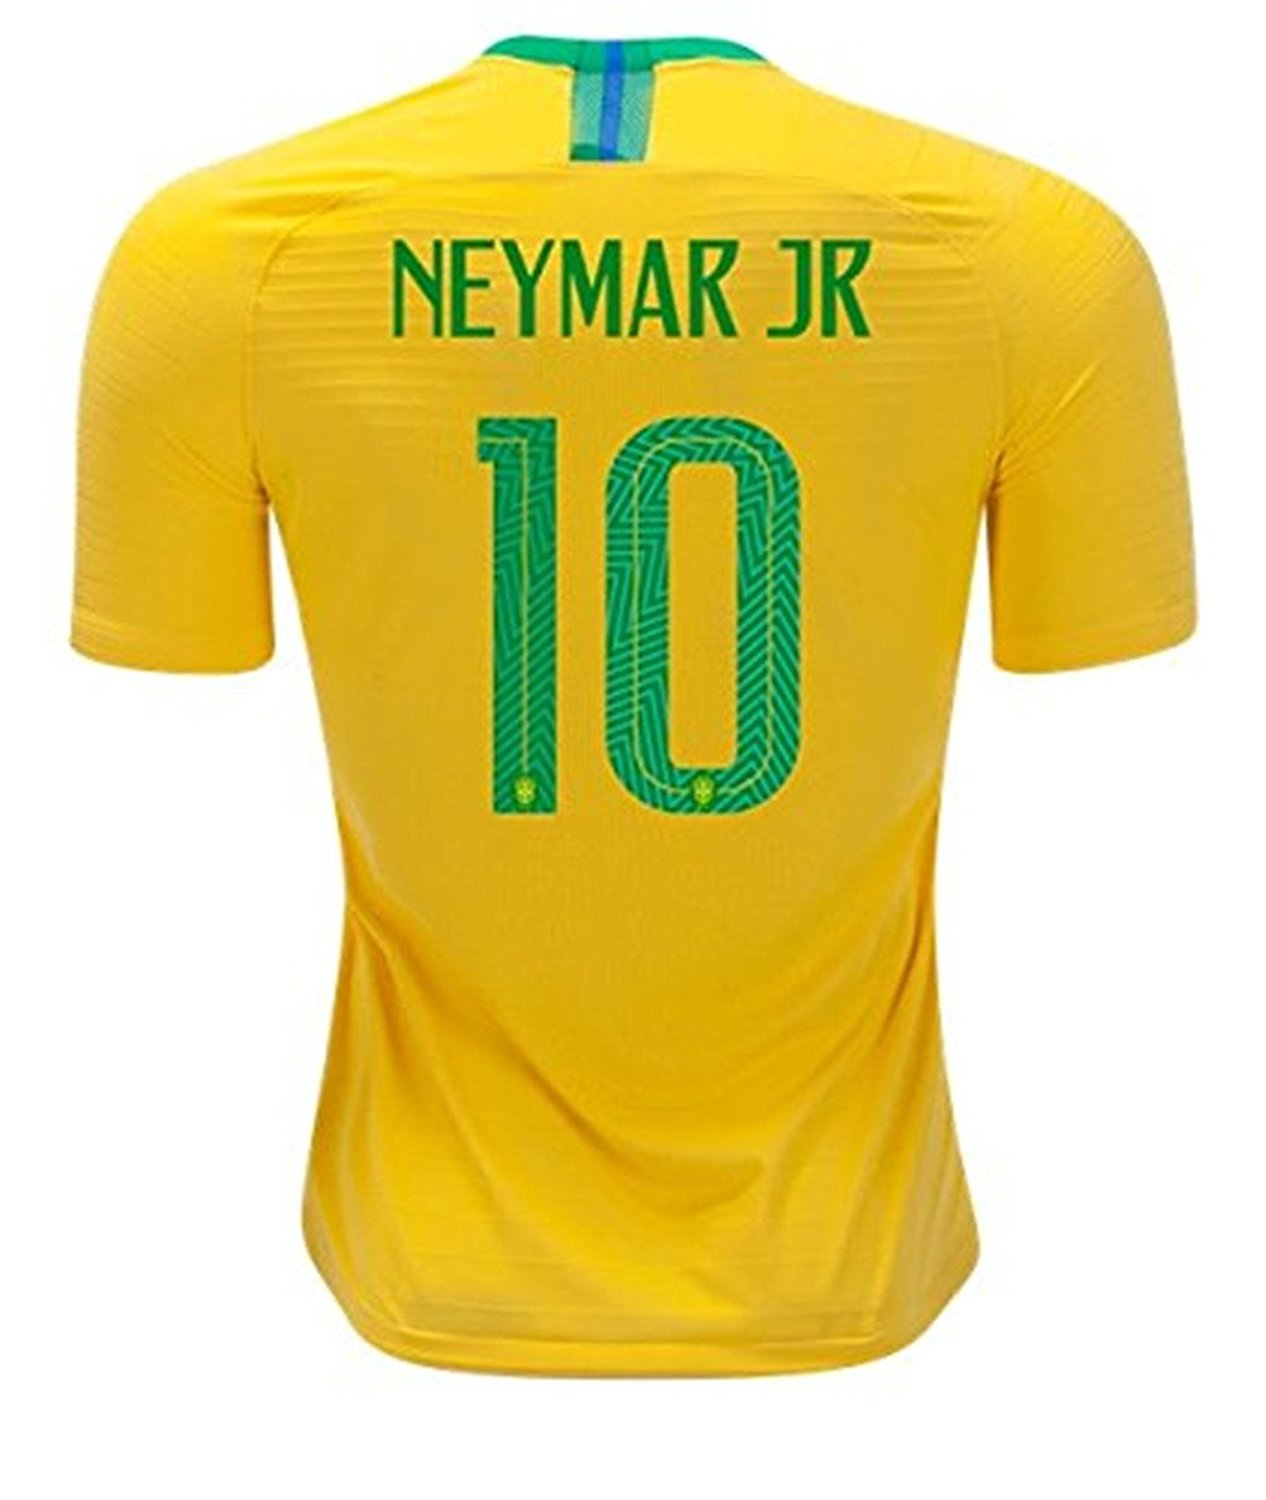 2a59e1af449 Jia-Storsyi 2018 Russia World Cup Neymar JR  10 Brazil National Home Men Soccer  Jersey Color Yellow Size M